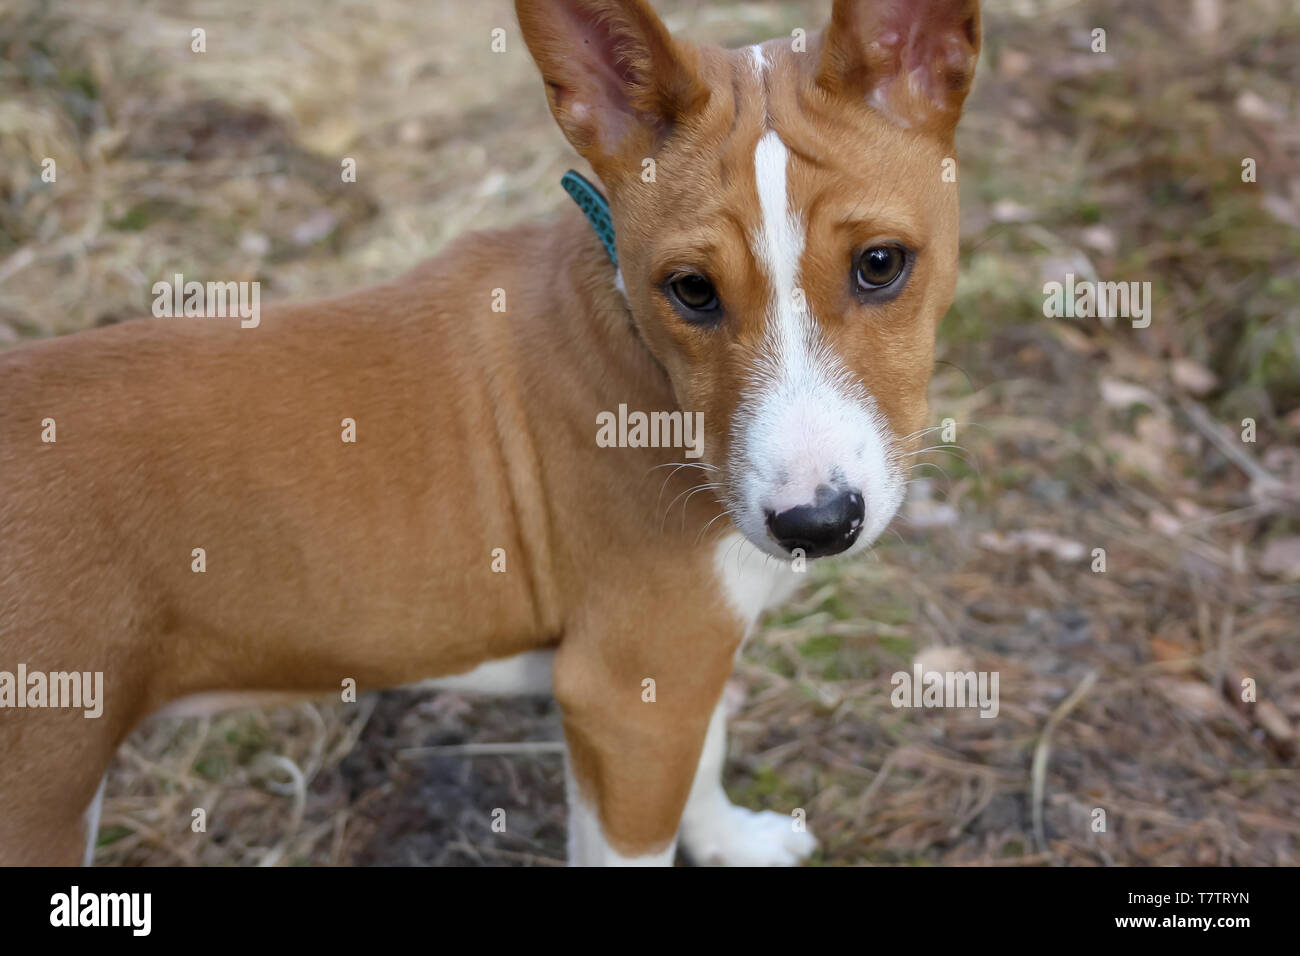 Close up portrait dog breed Basenji with short hair of white and red color, standing outside with forest in the background on summer - Stock Image